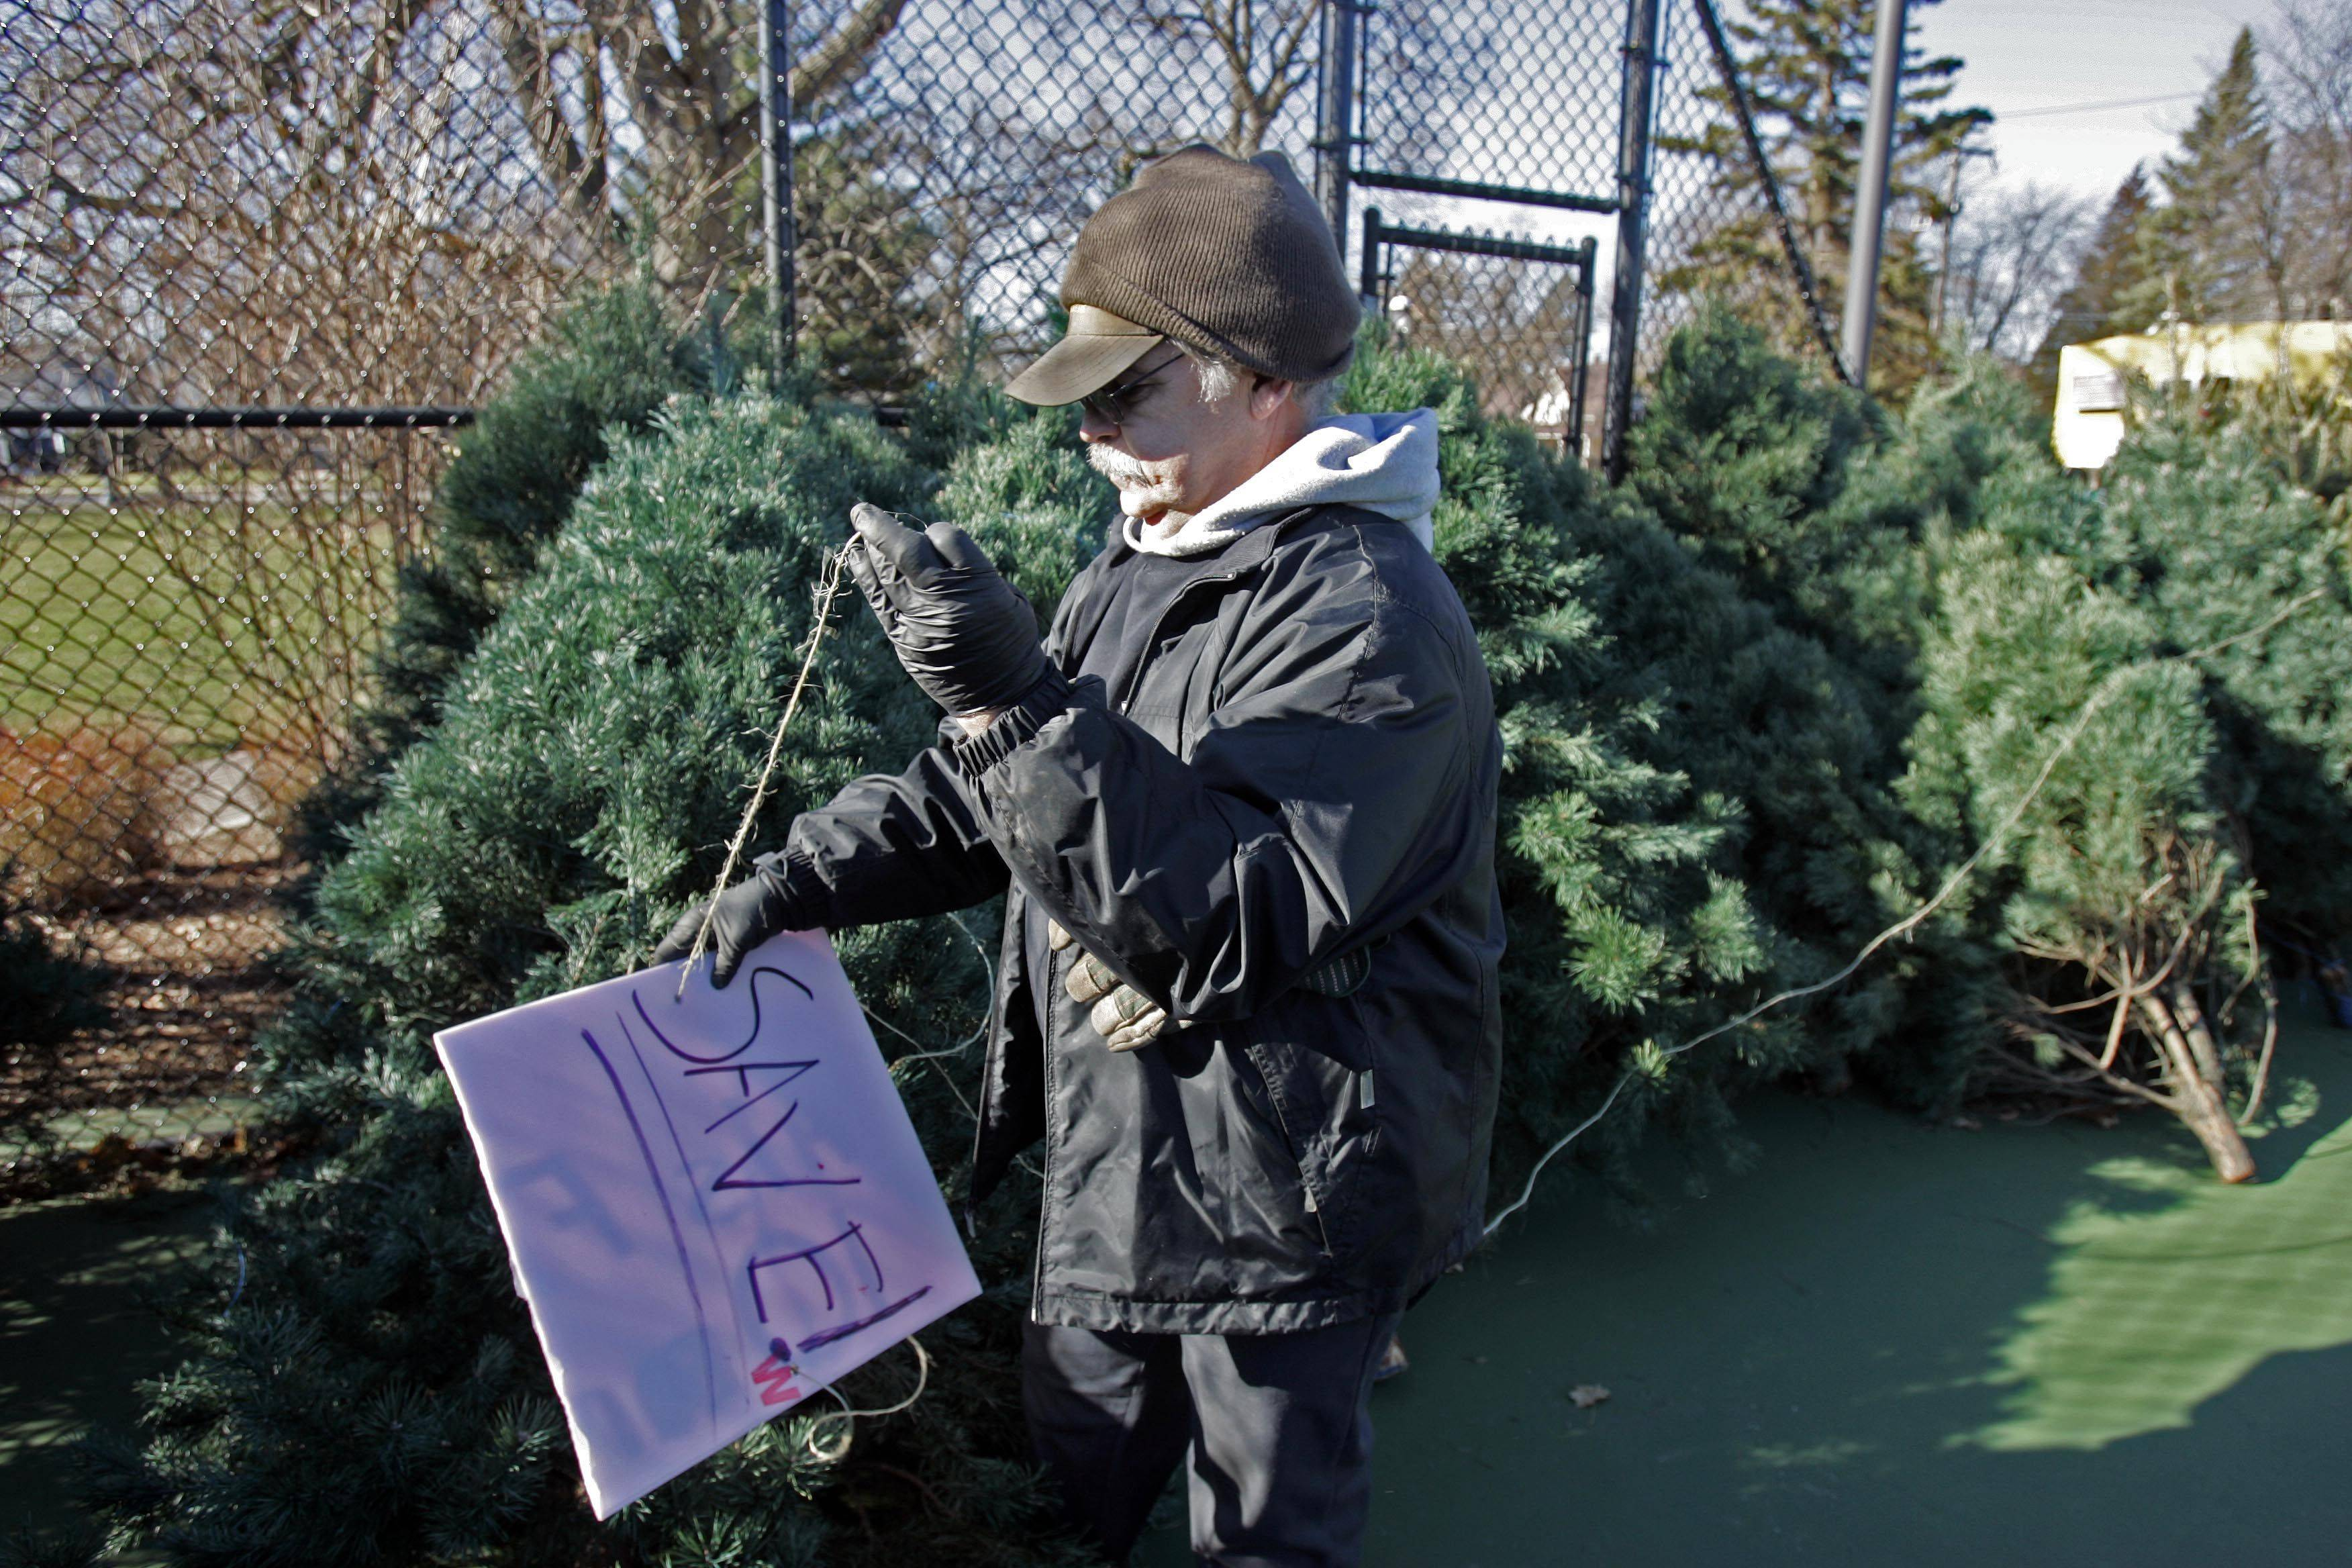 John Cichowski labels save signs on a few of the trees at the West Dundee and Carpentersville Lions Christmas tree sale at Grafelman Park in West Dundee. They will be open Thursdays and Fridays from 6-8 P.M. and Saturday and Sunday from 10 A.M. to 6 P.M. The trees are being saved for the Festival of Trees next Friday.